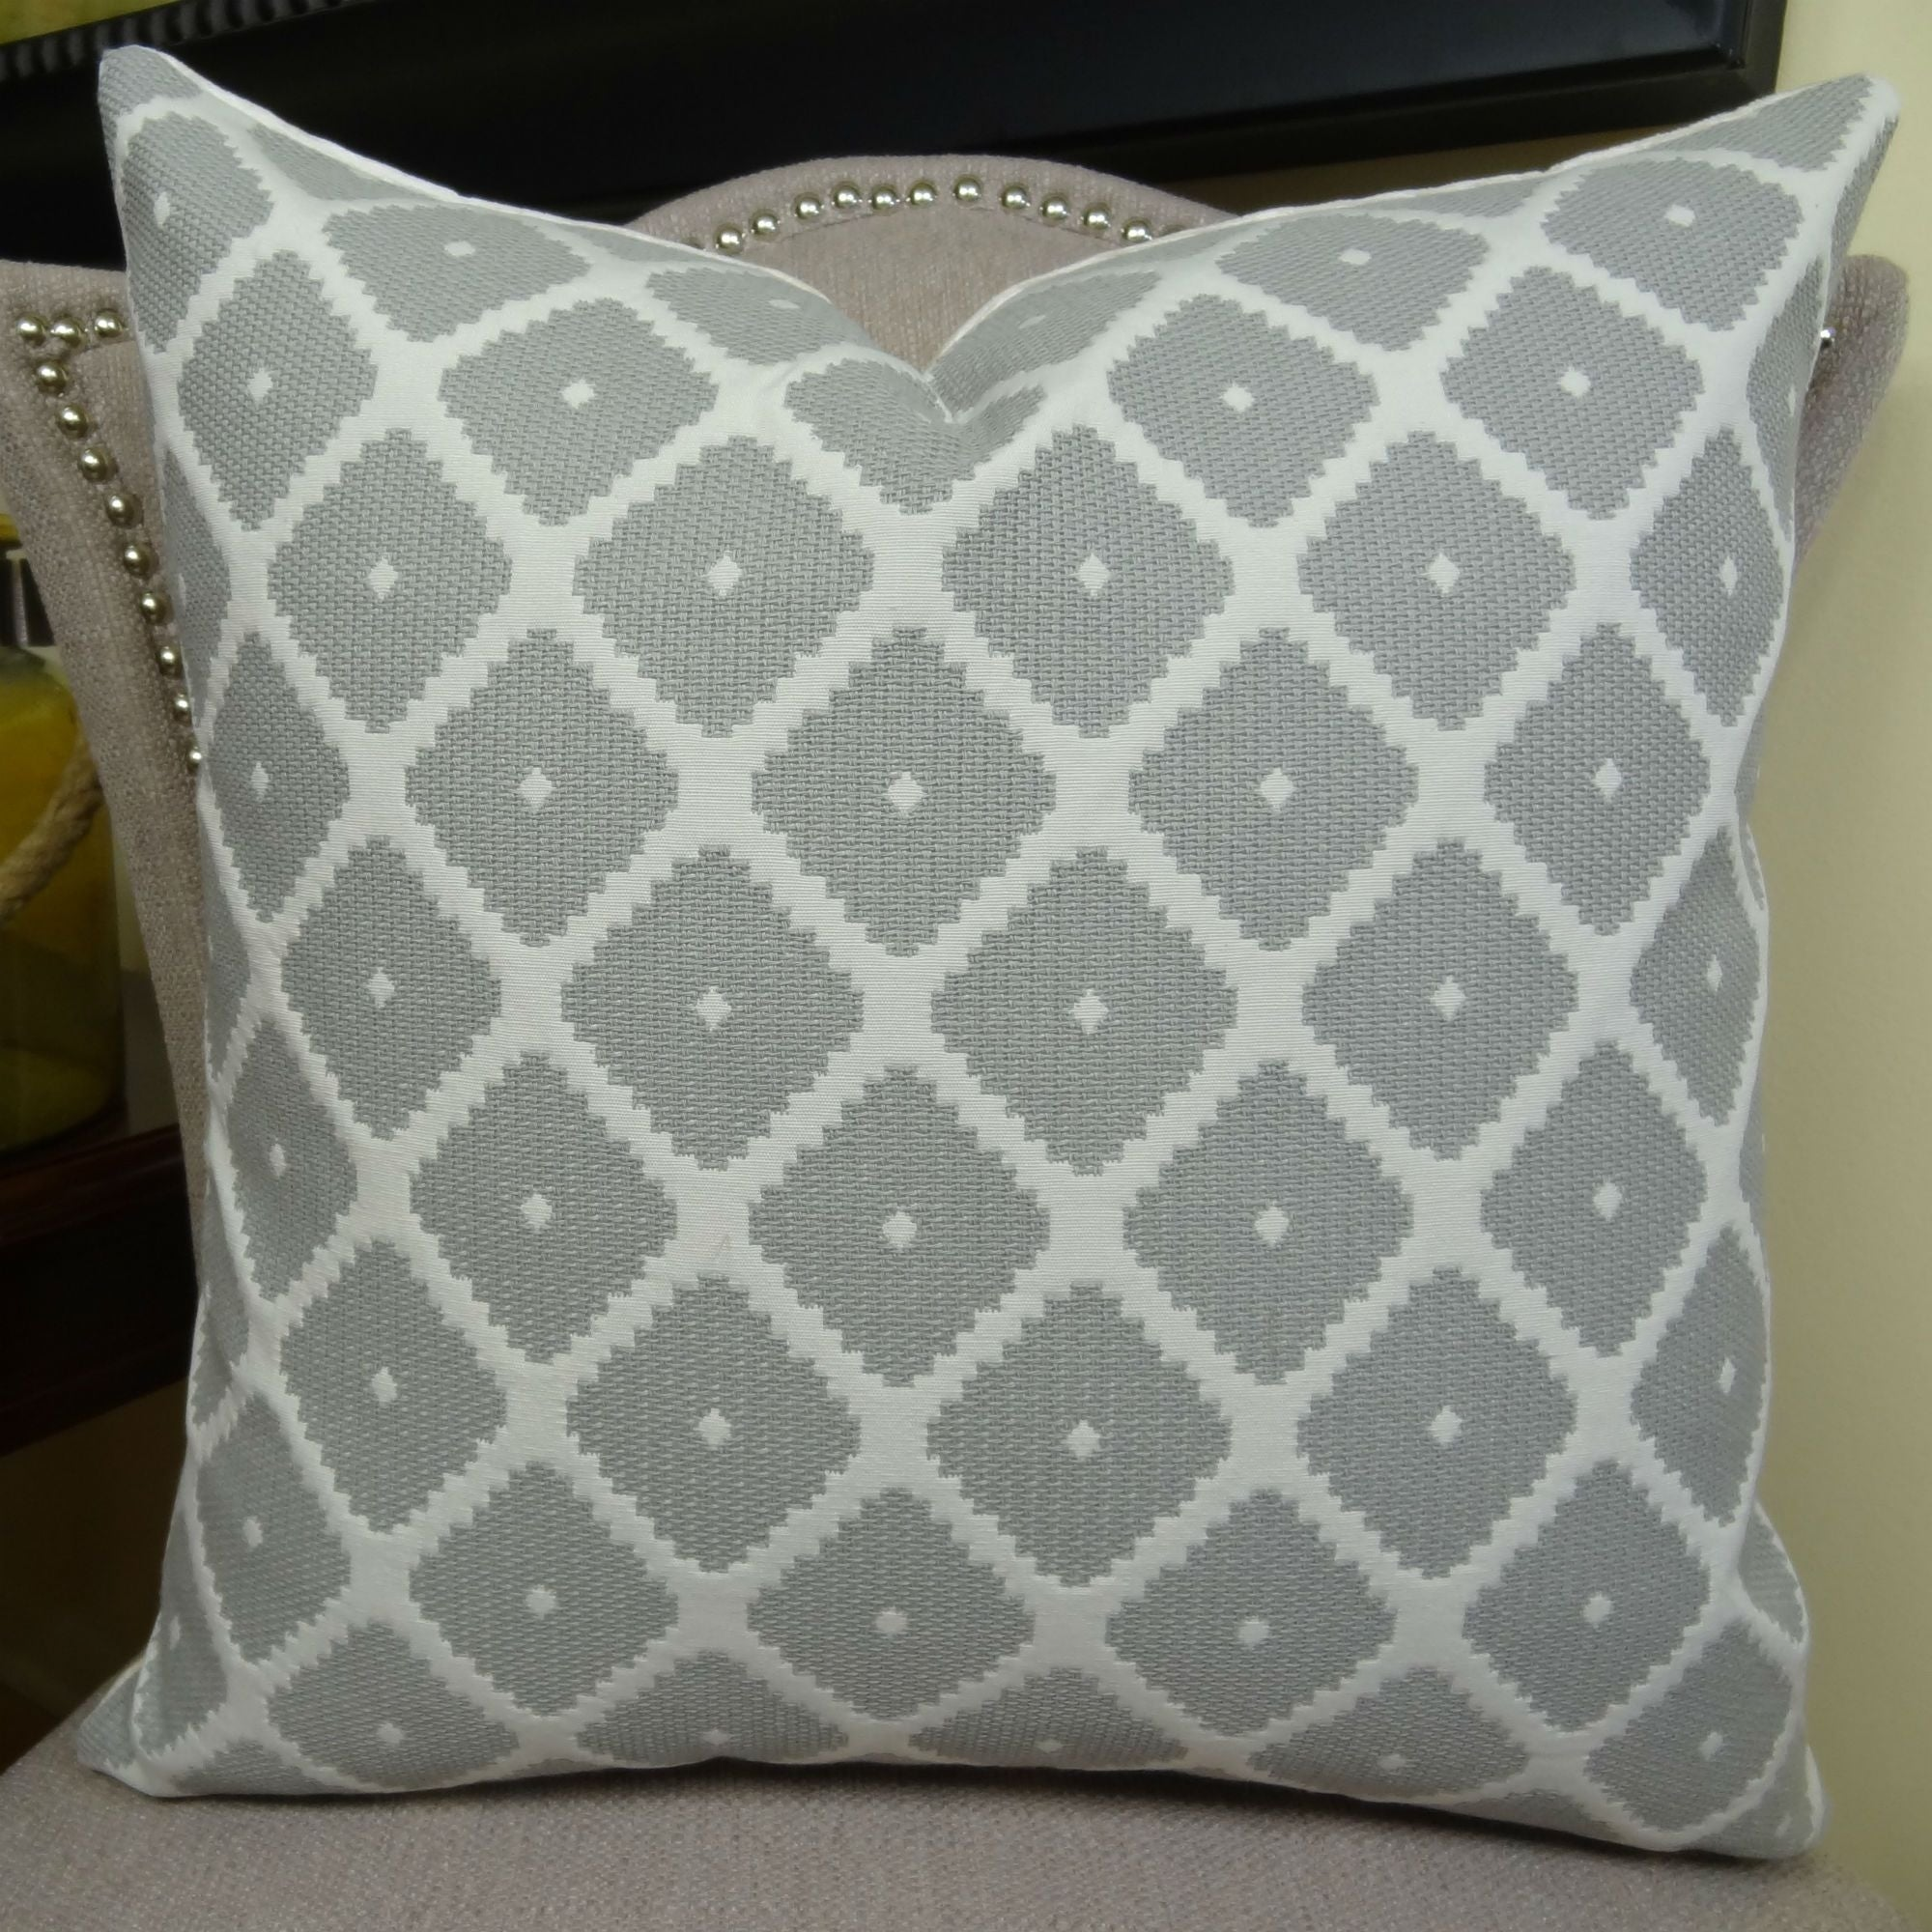 Thomas Collection Gray White Geometric Designer Throw Pillow, Handmade in USA, 11196D (Oversized - Square - double sided 26 x 26)